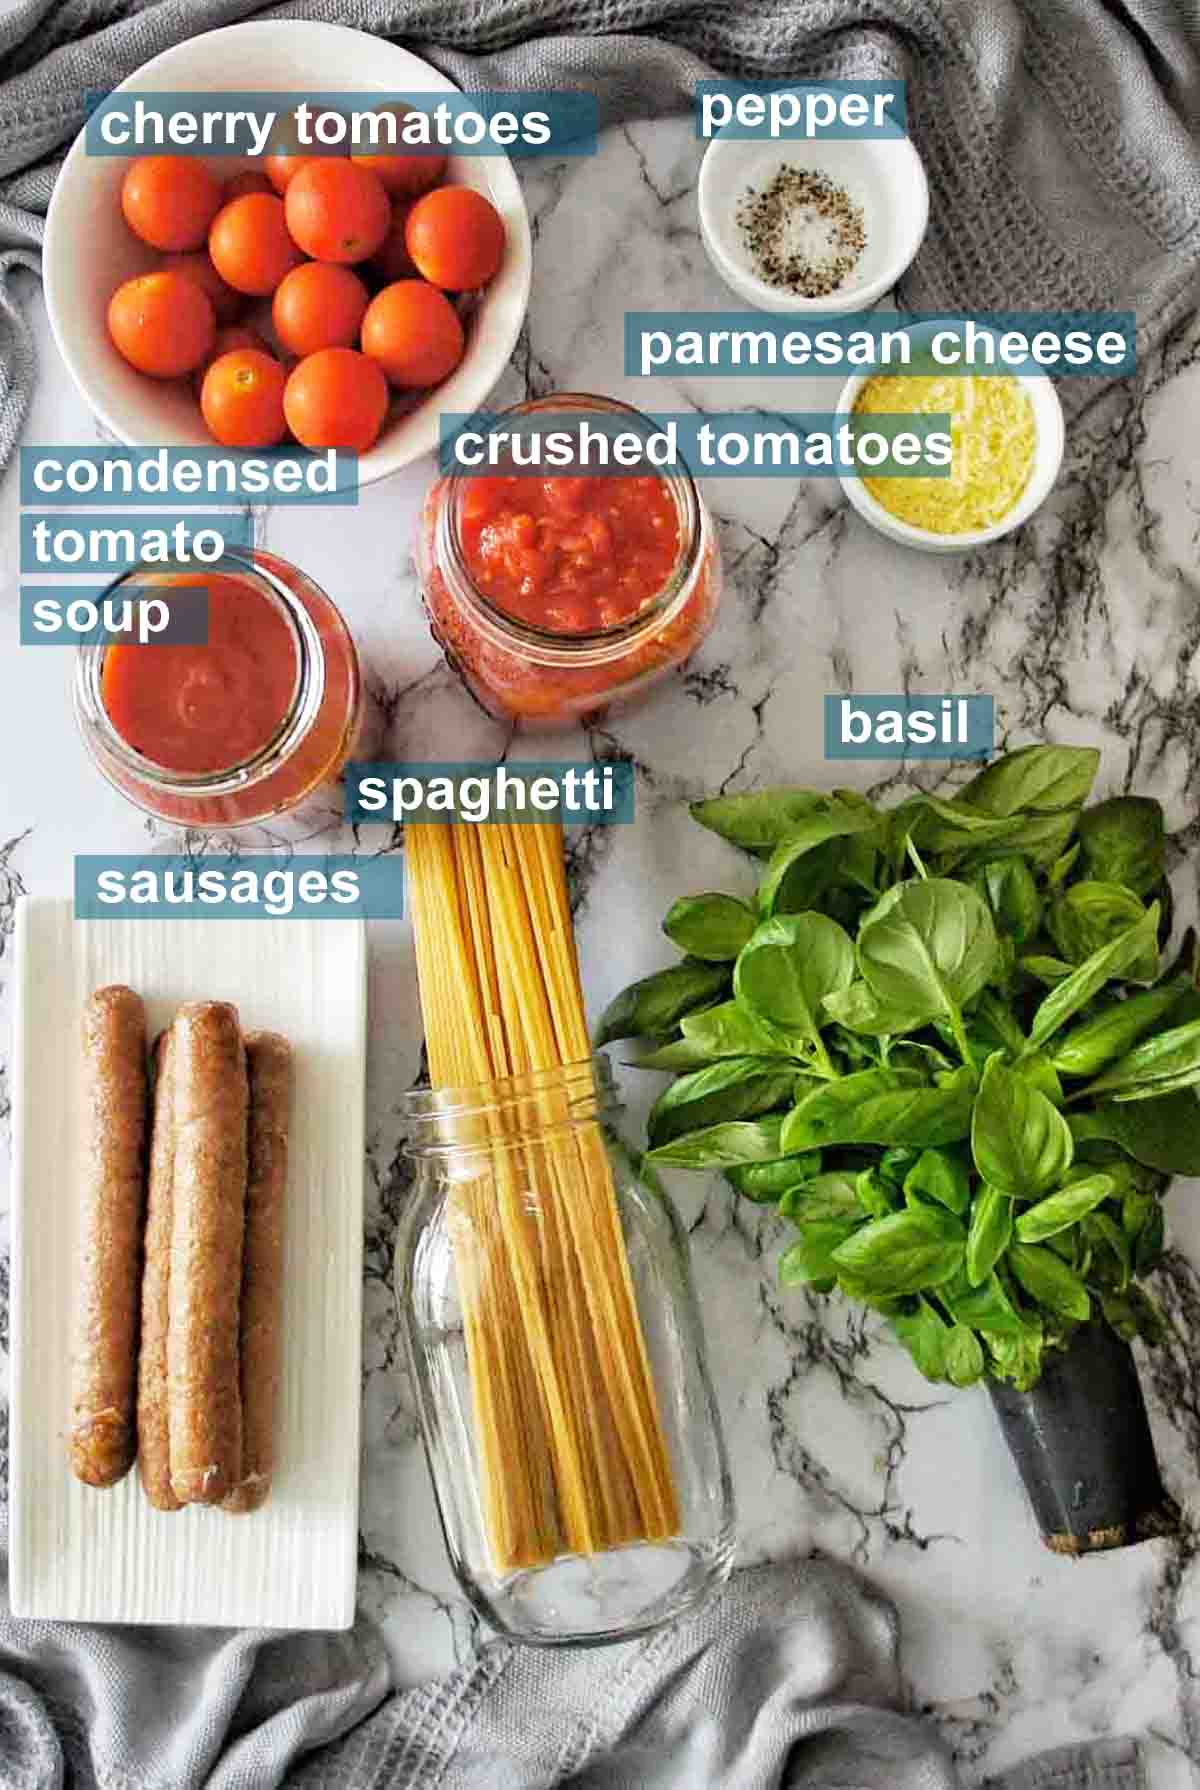 Spaghetti Sausage ingredients with text over lay